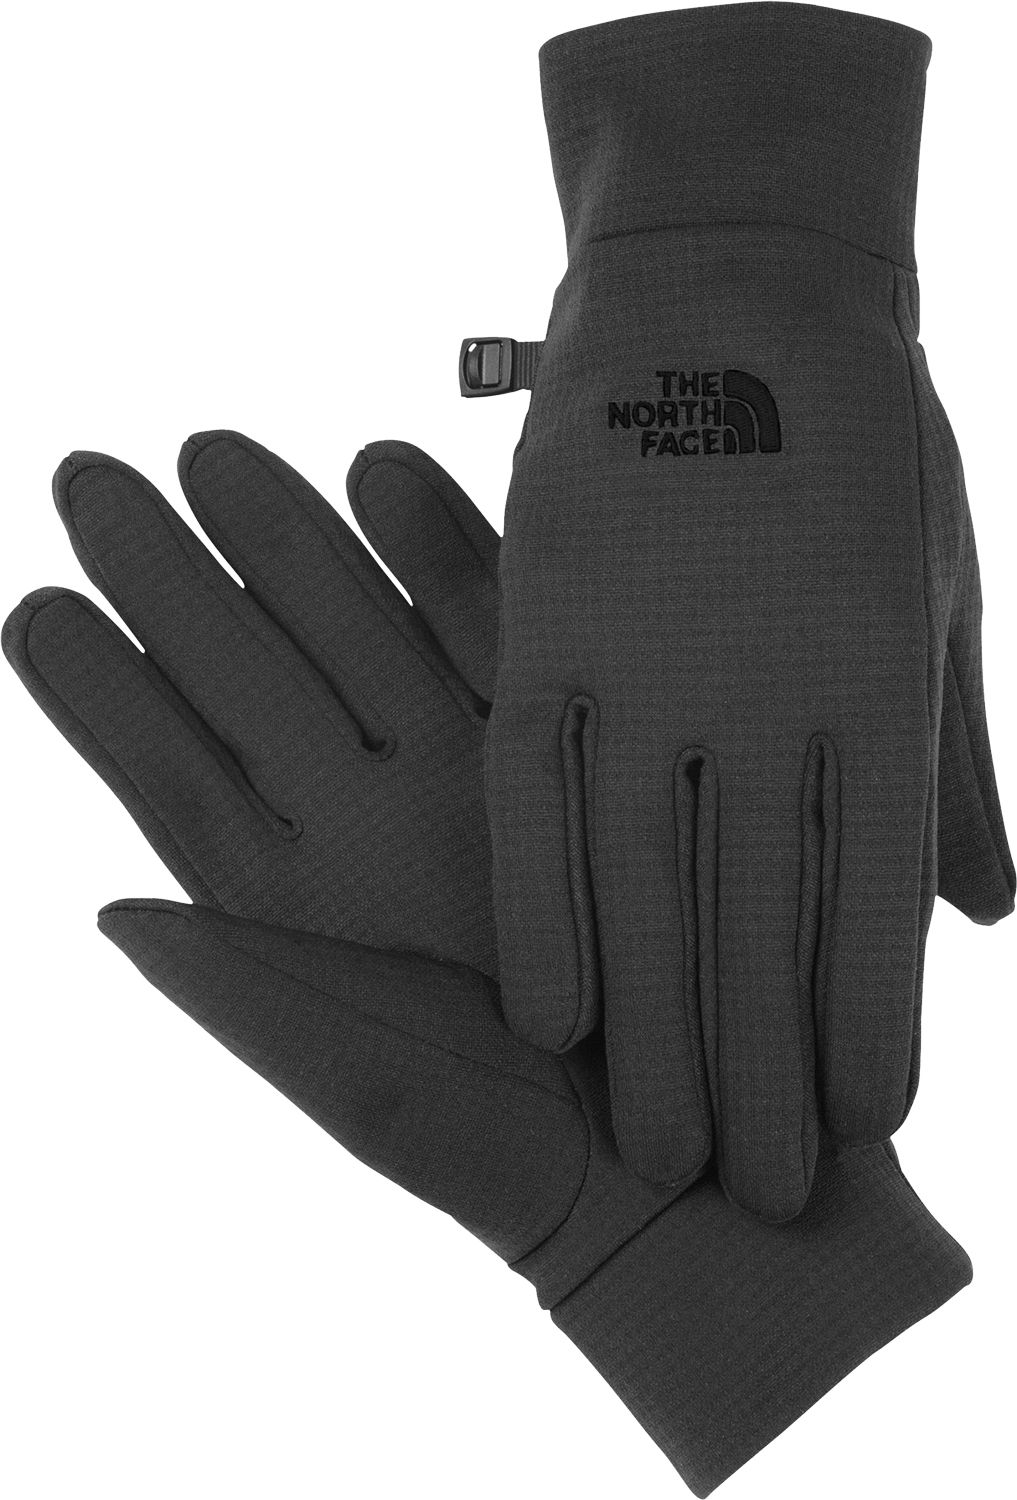 north face gloves